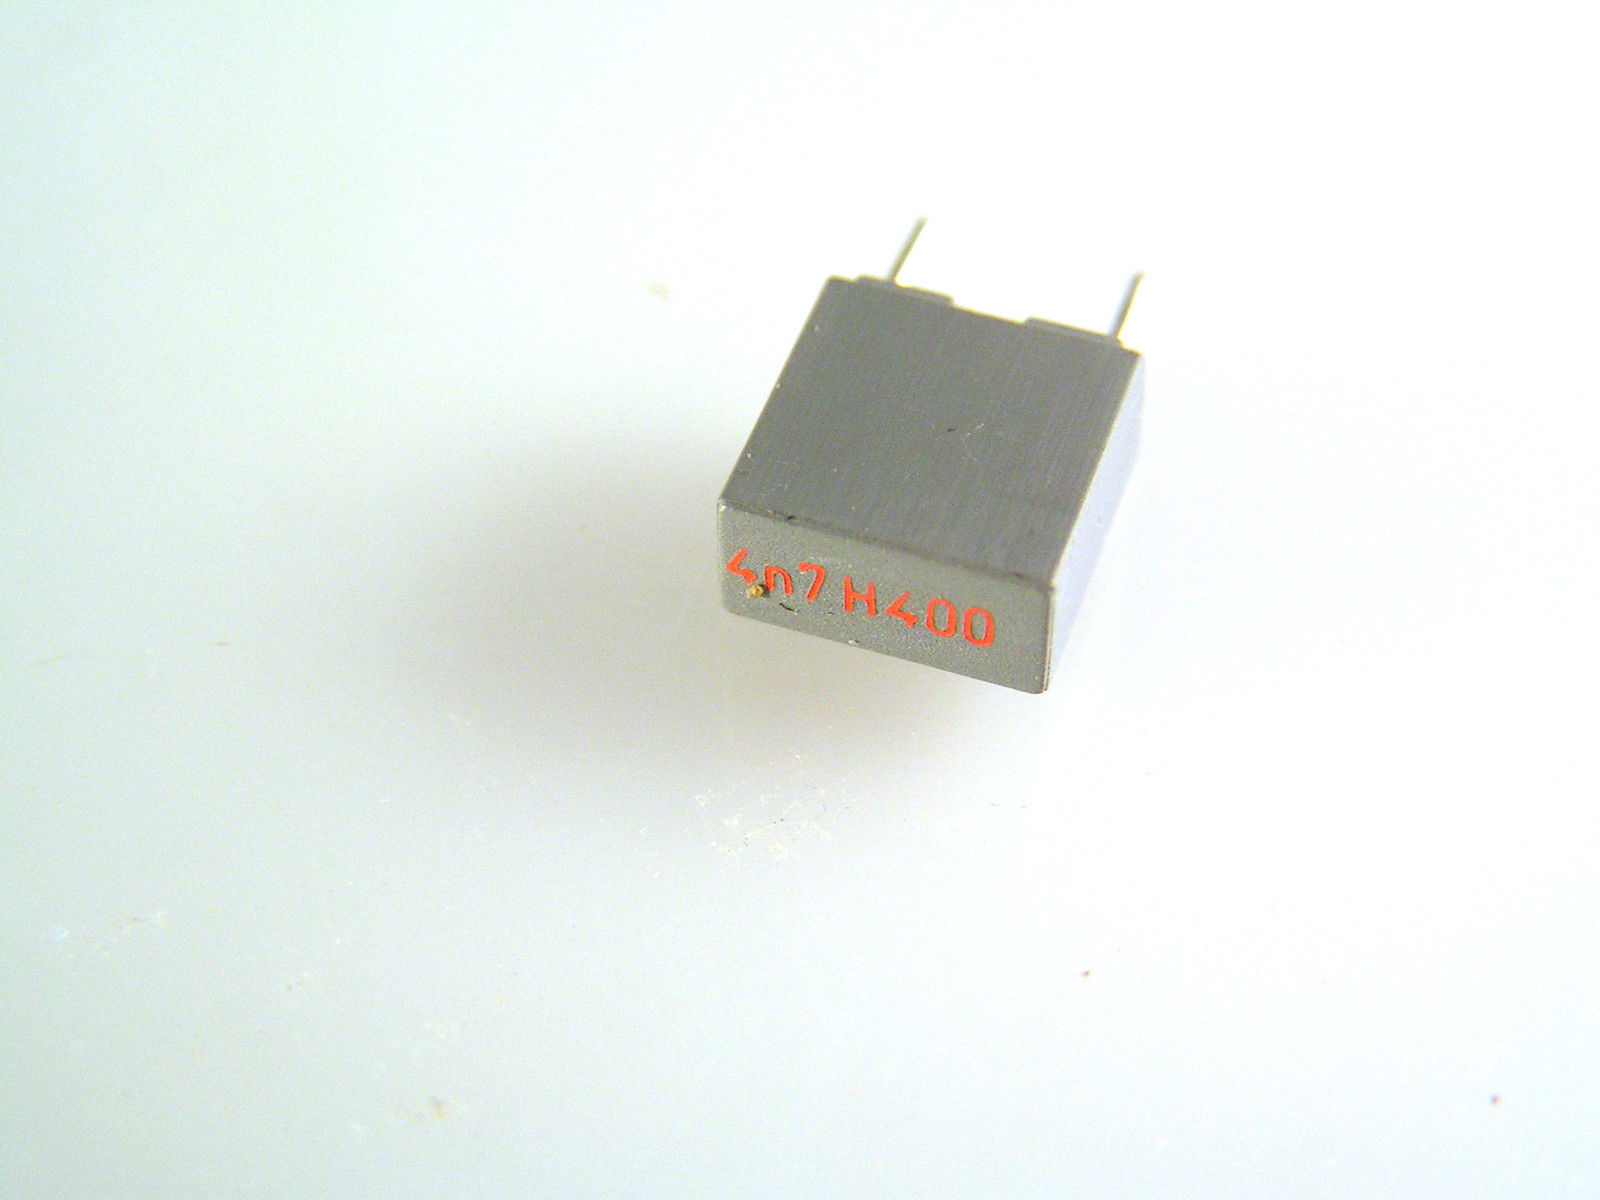 Box Polyester Capacitor 4n7 400v 5mm Pitch 10 pieces OL0532